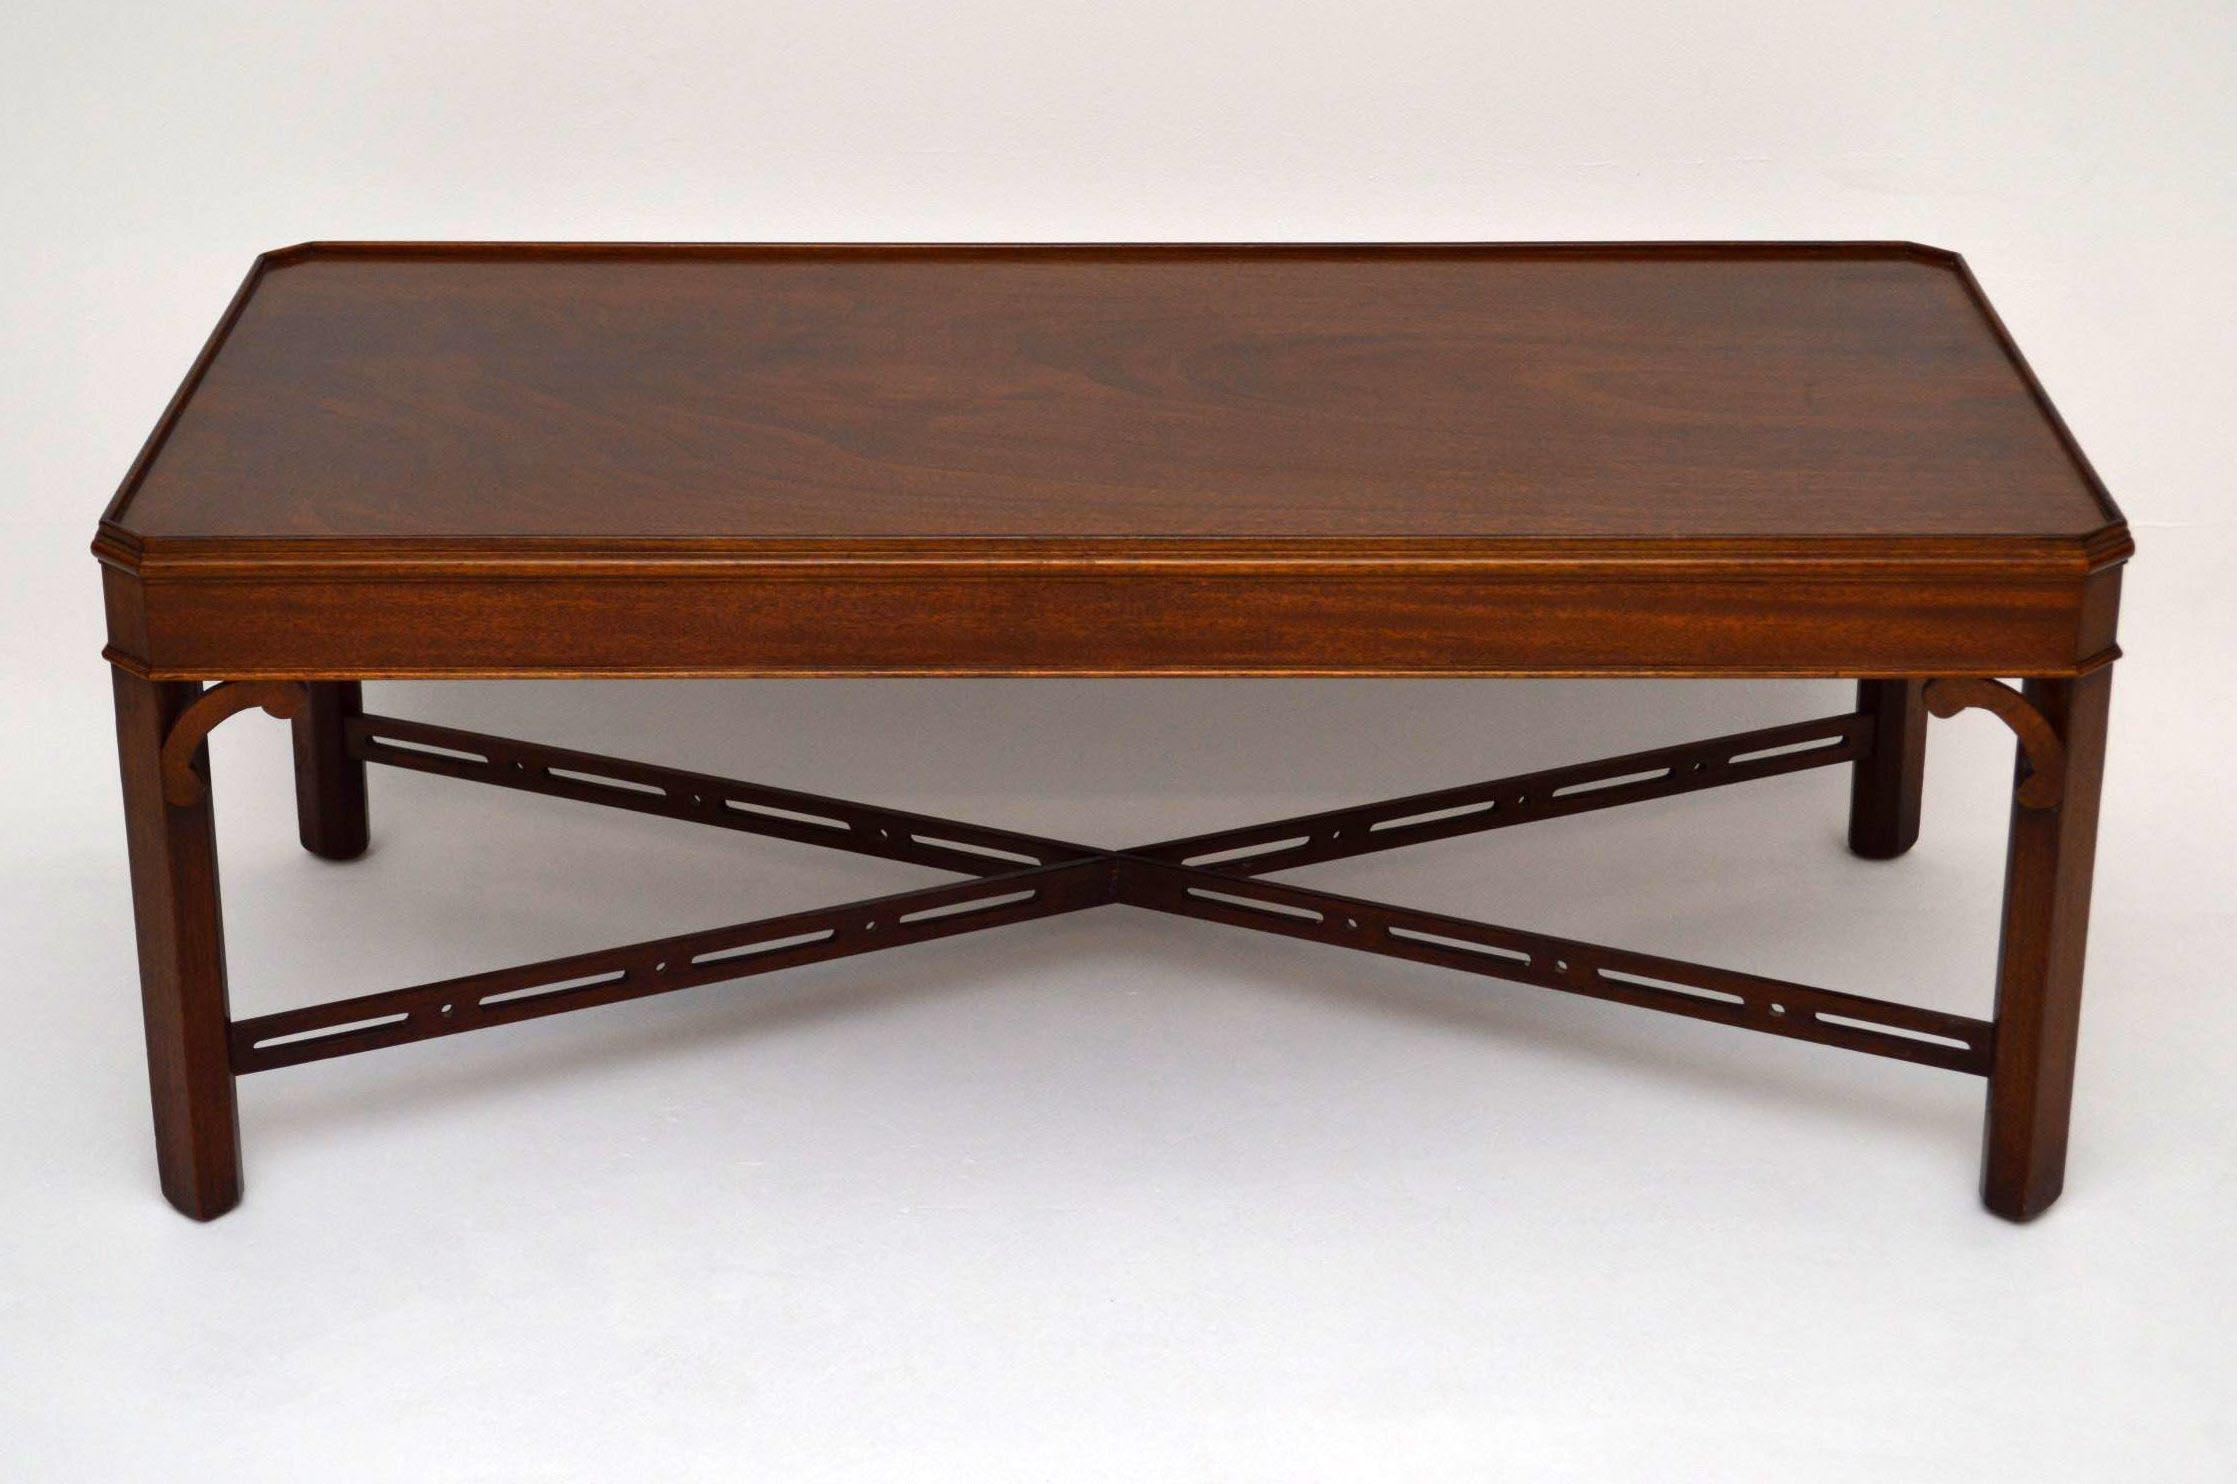 Large Mahogany Coffee Table Coffee Table Design Ideas